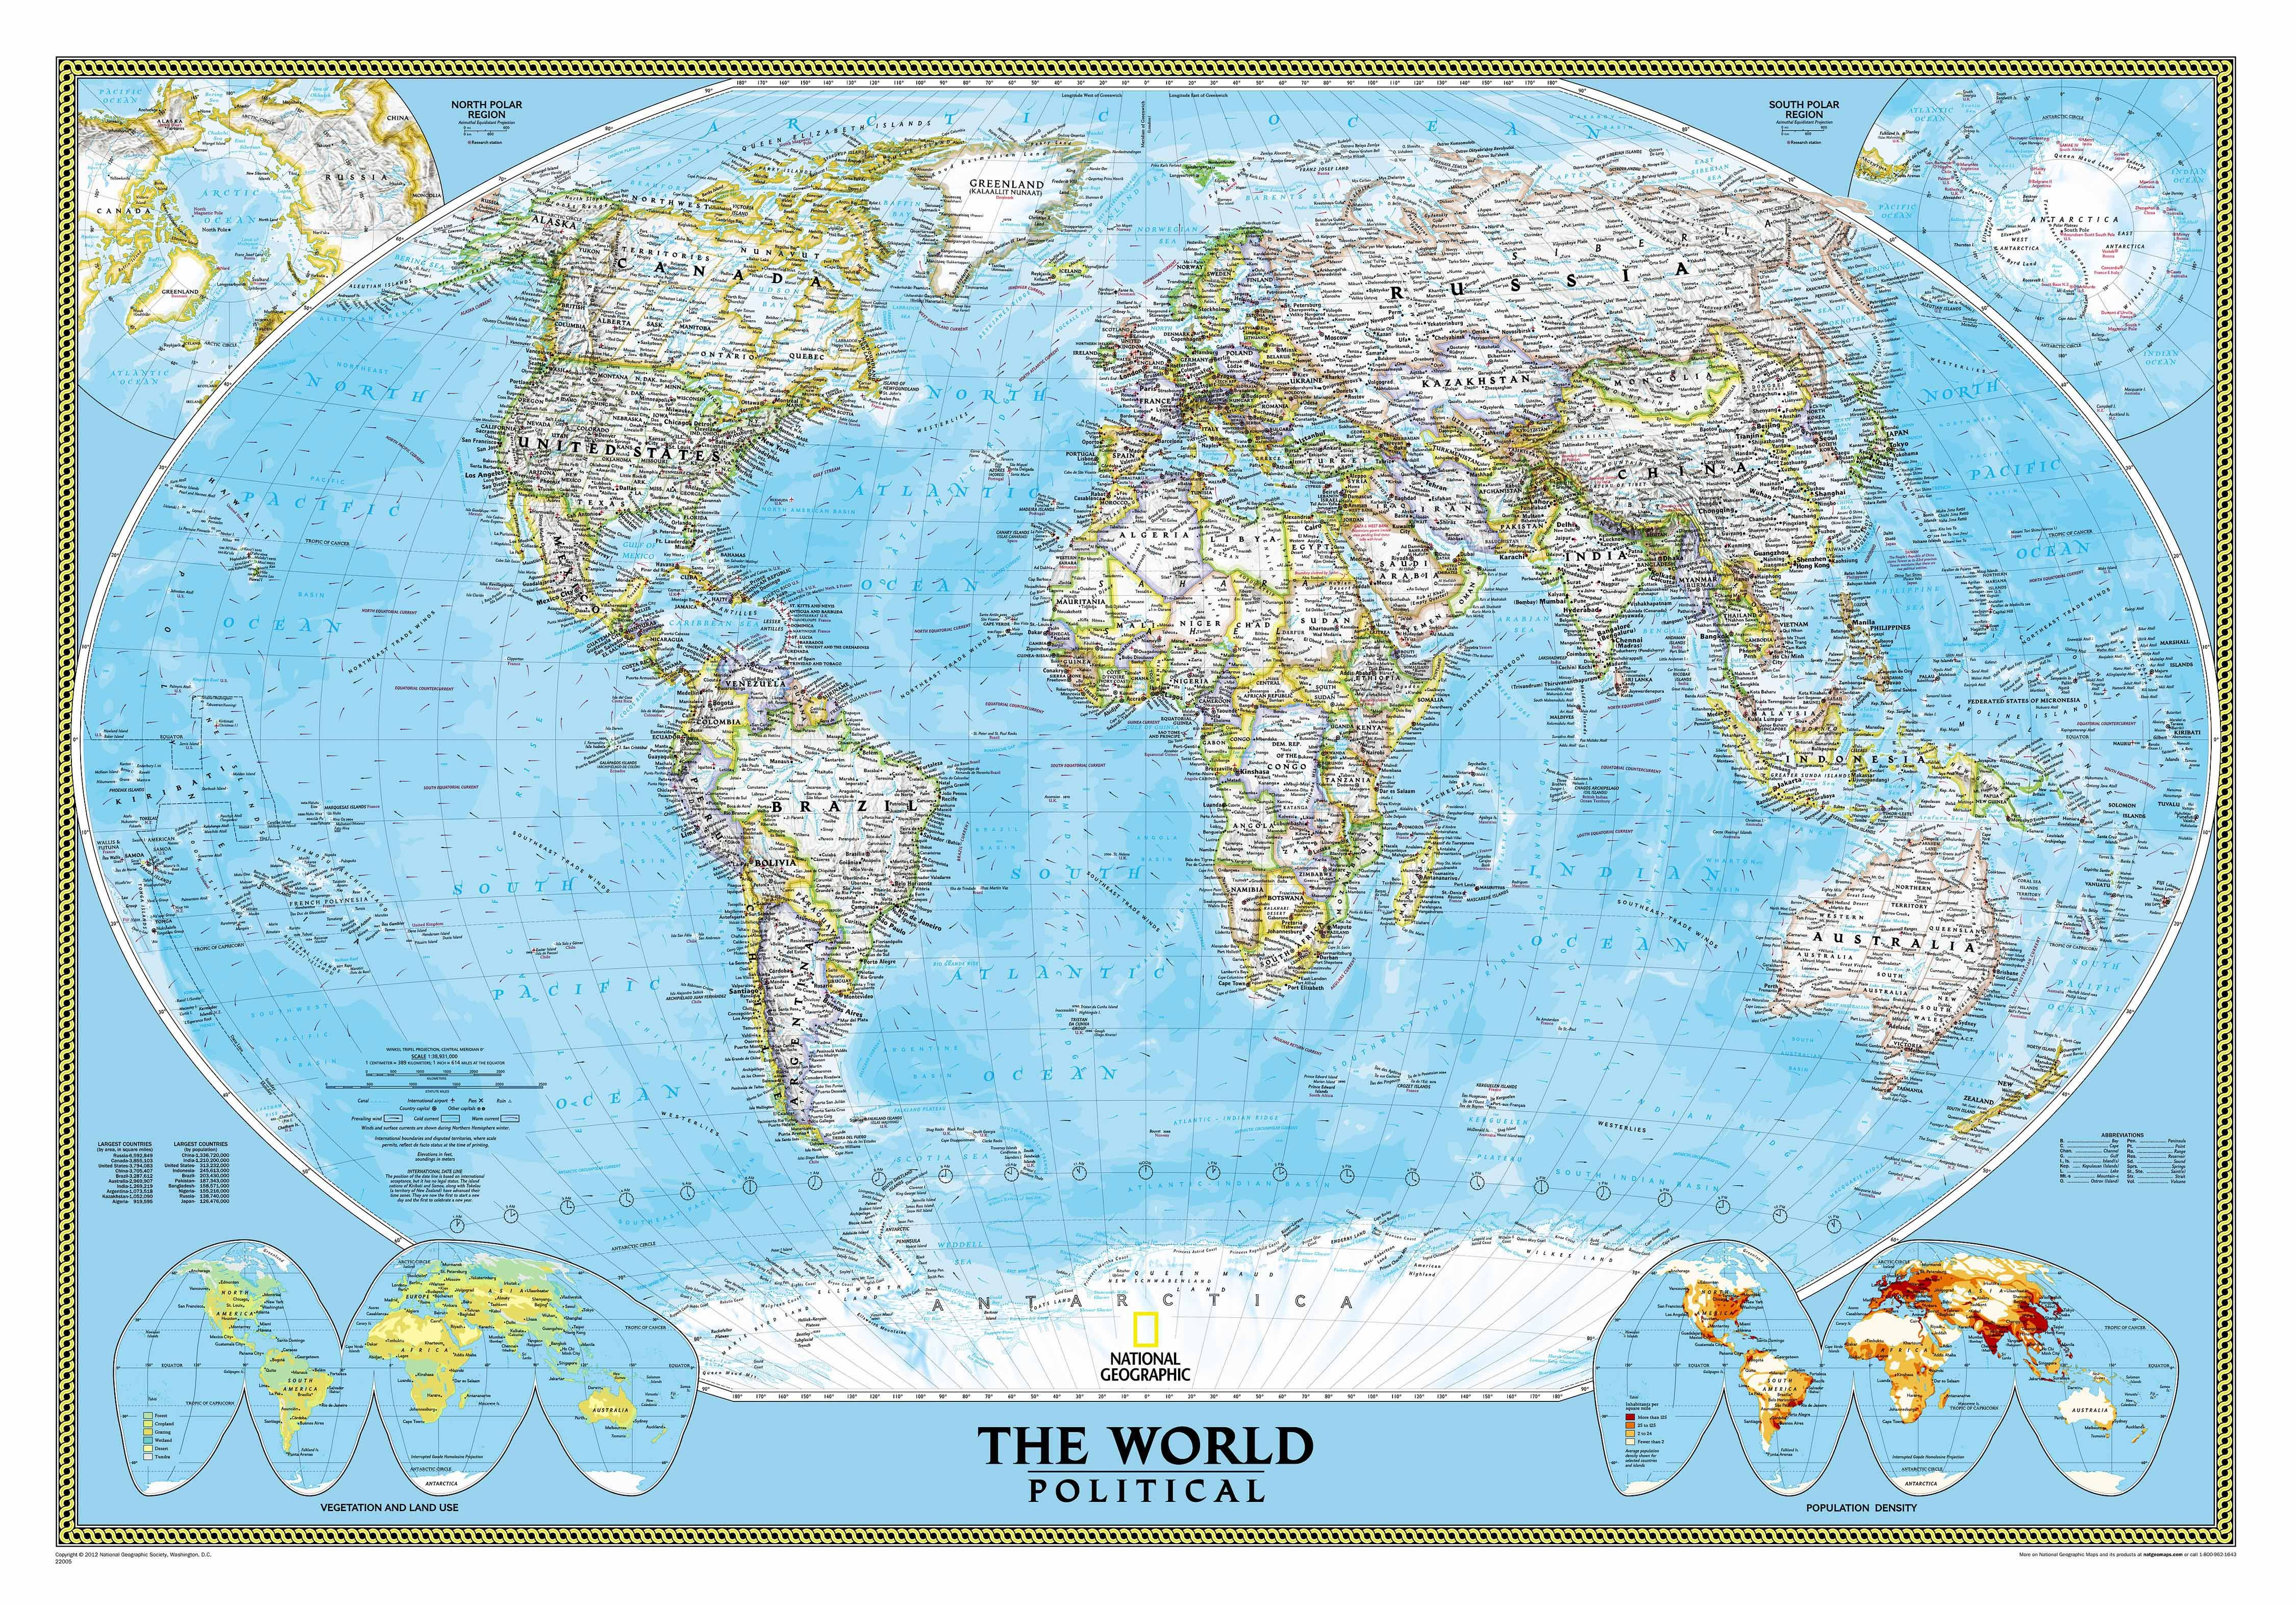 World map political world map mural 3 sizes two color choices world map political world map mural 3 sizes two color choices gumiabroncs Image collections